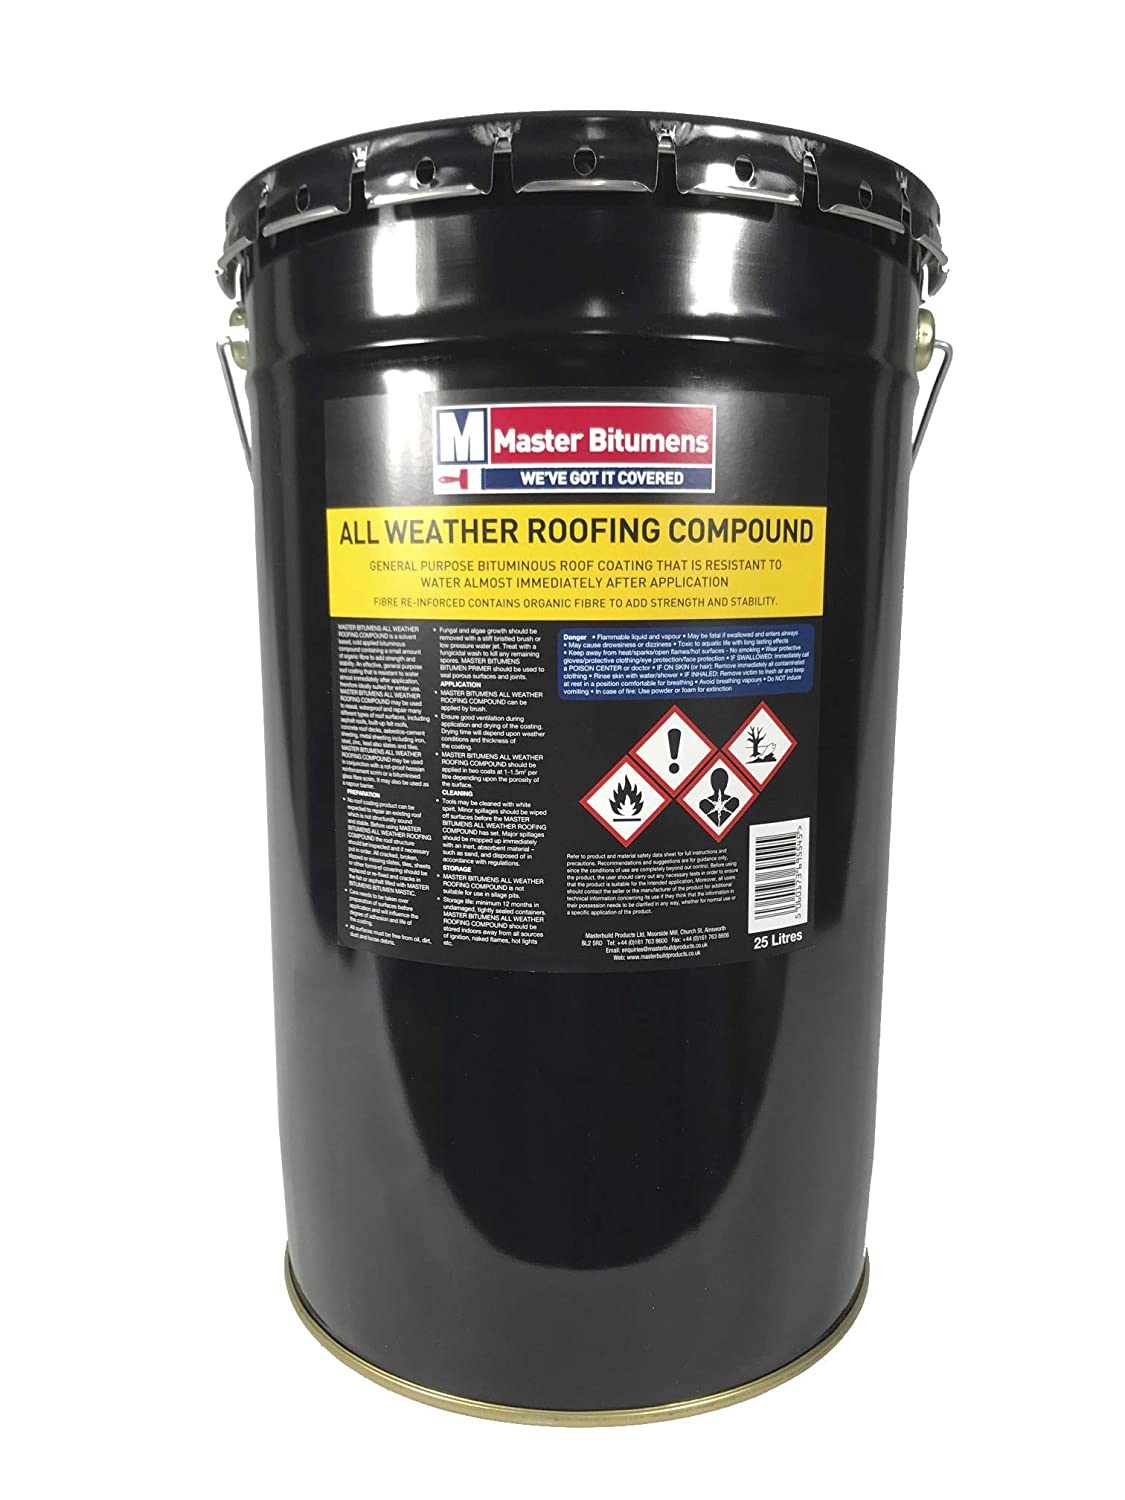 ALL WEATHER ROOFING COMPOUND BITUMEN WATERPROOF ROOF COATING 25 LITRE MB